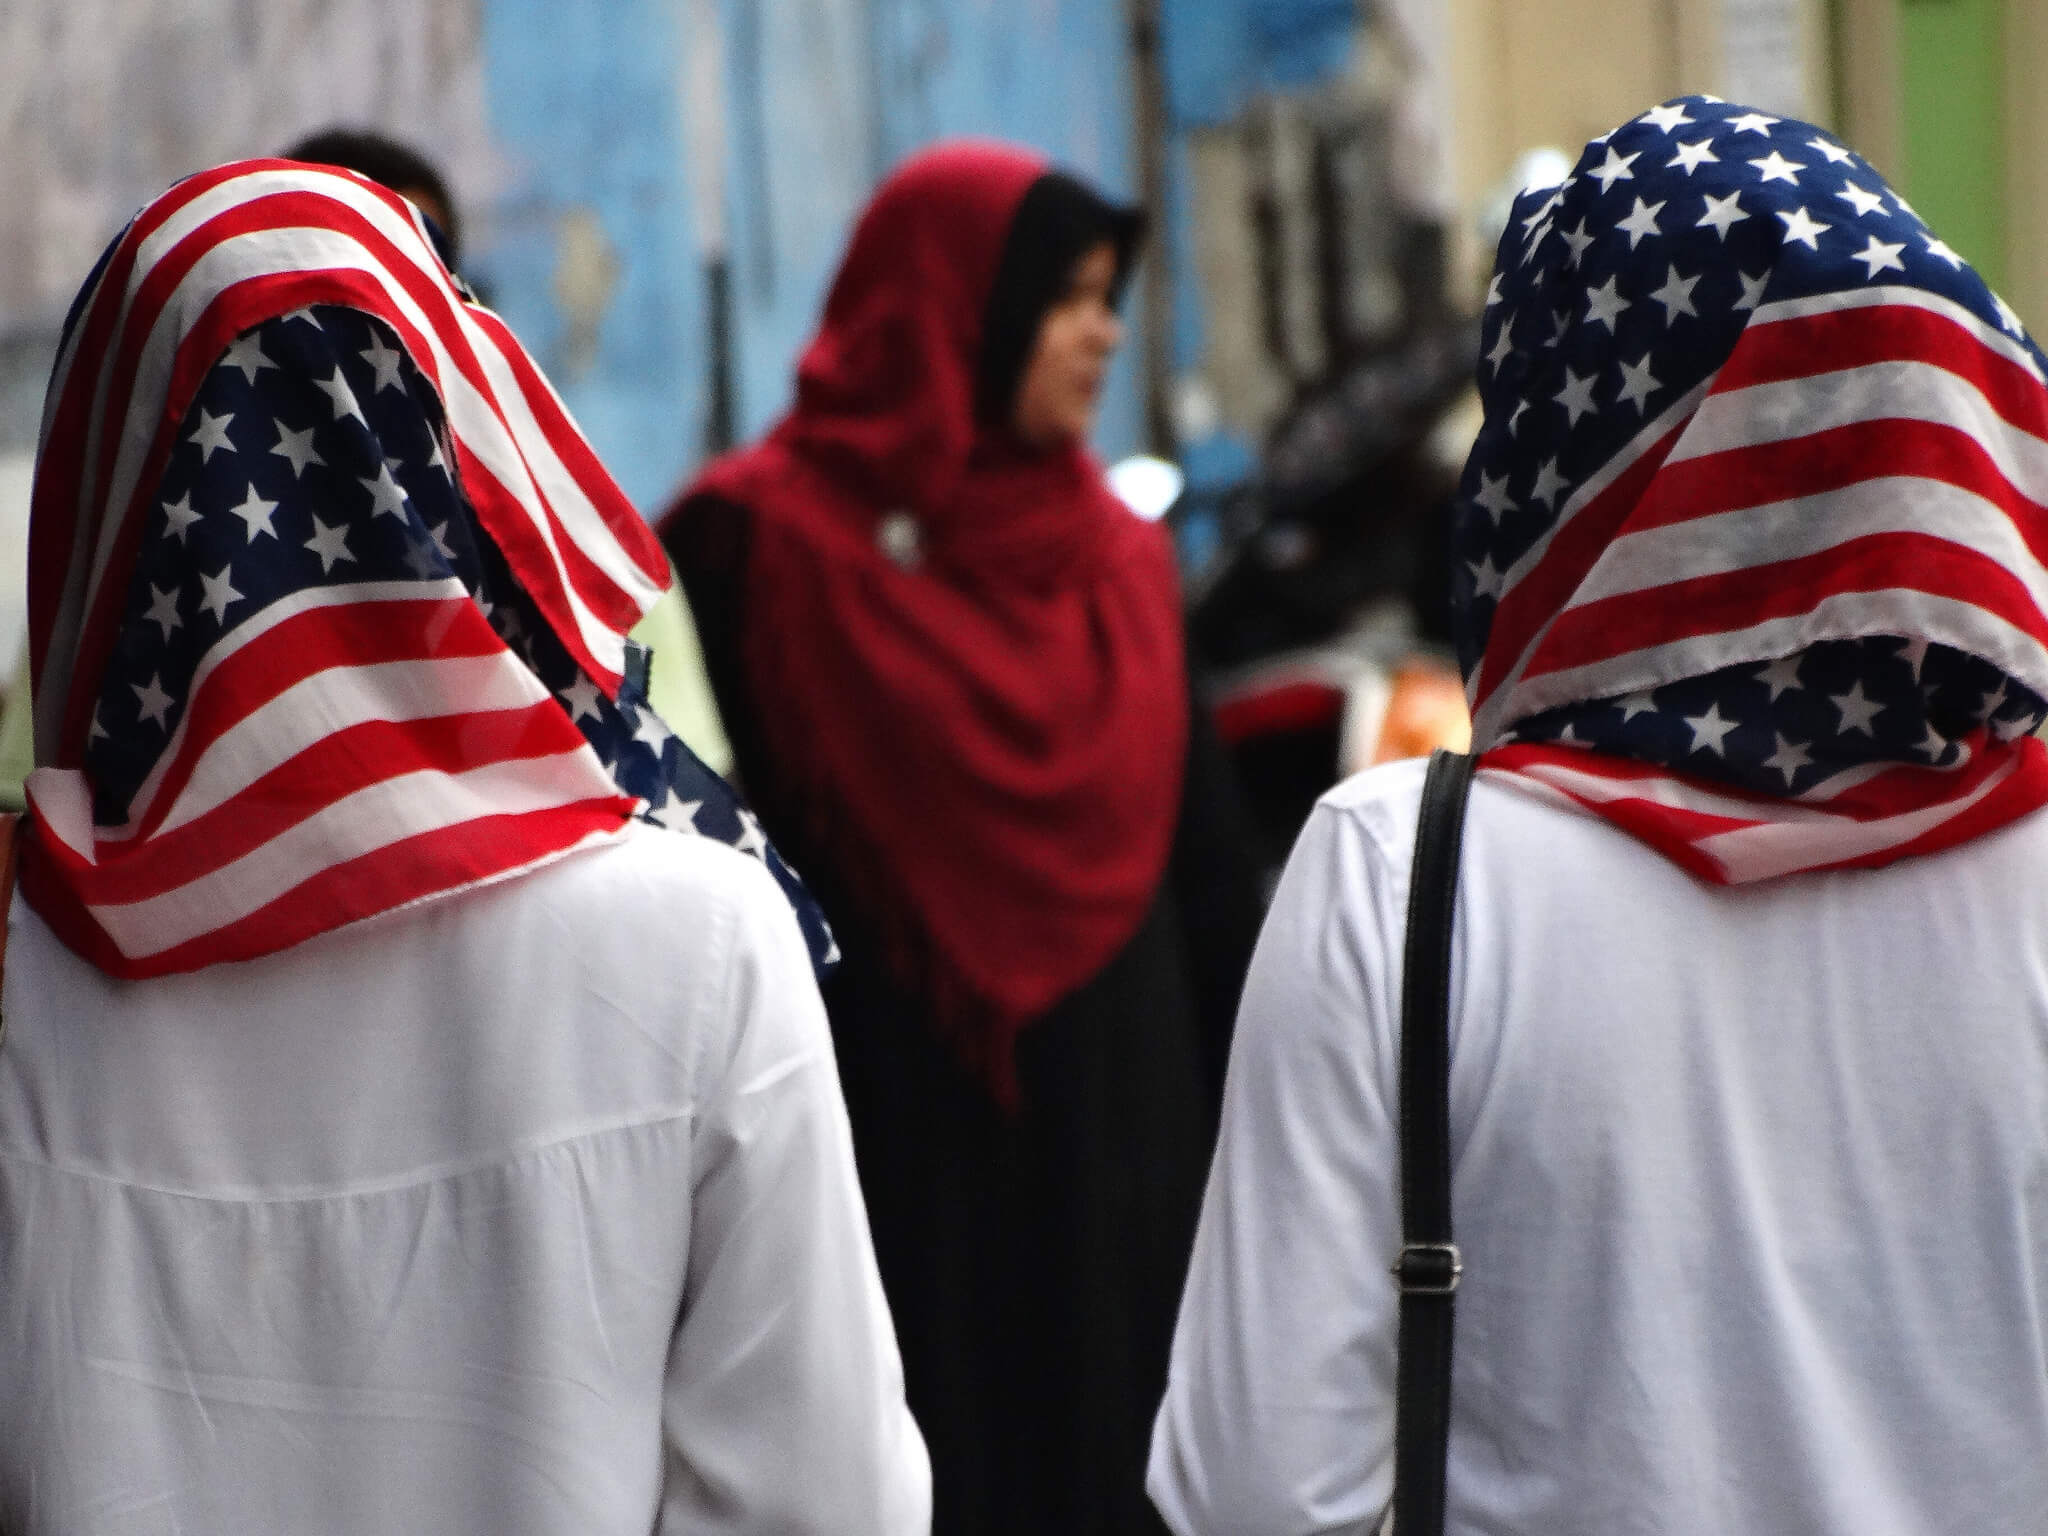 research paper on muslims in the united states blog ultius two muslim women wear stars and stripes hibjabs